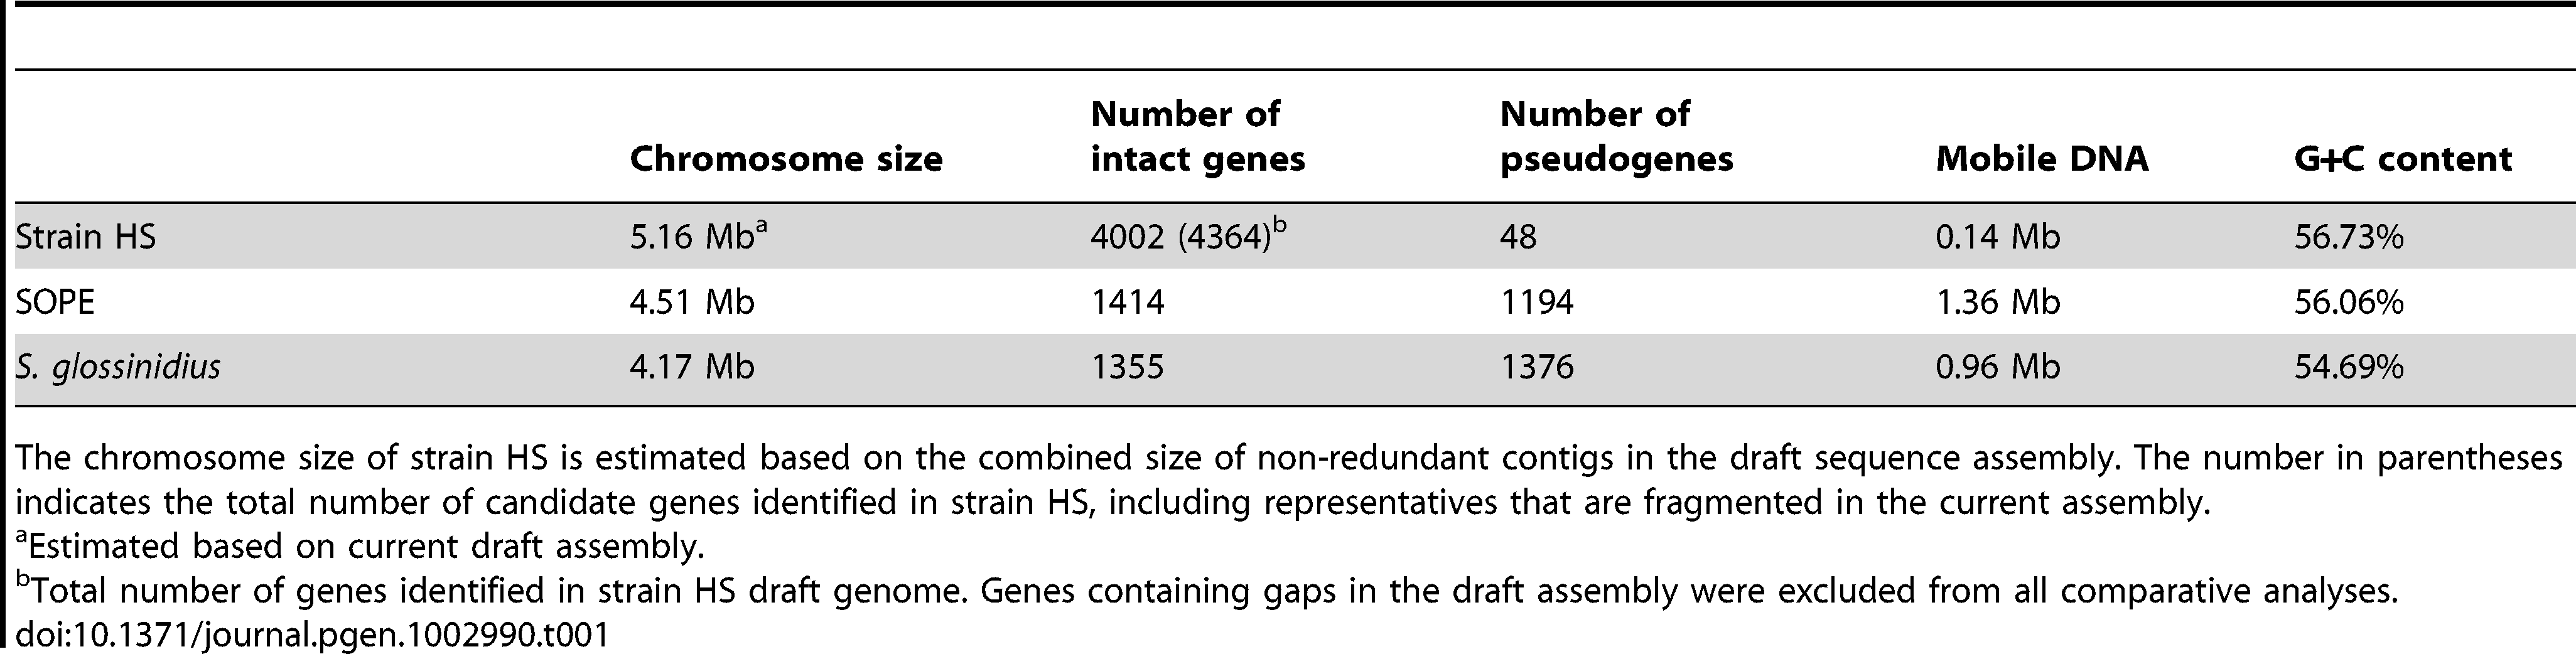 General features of the strain HS, SOPE, and <i>S. glossinidius</i> genome sequences.